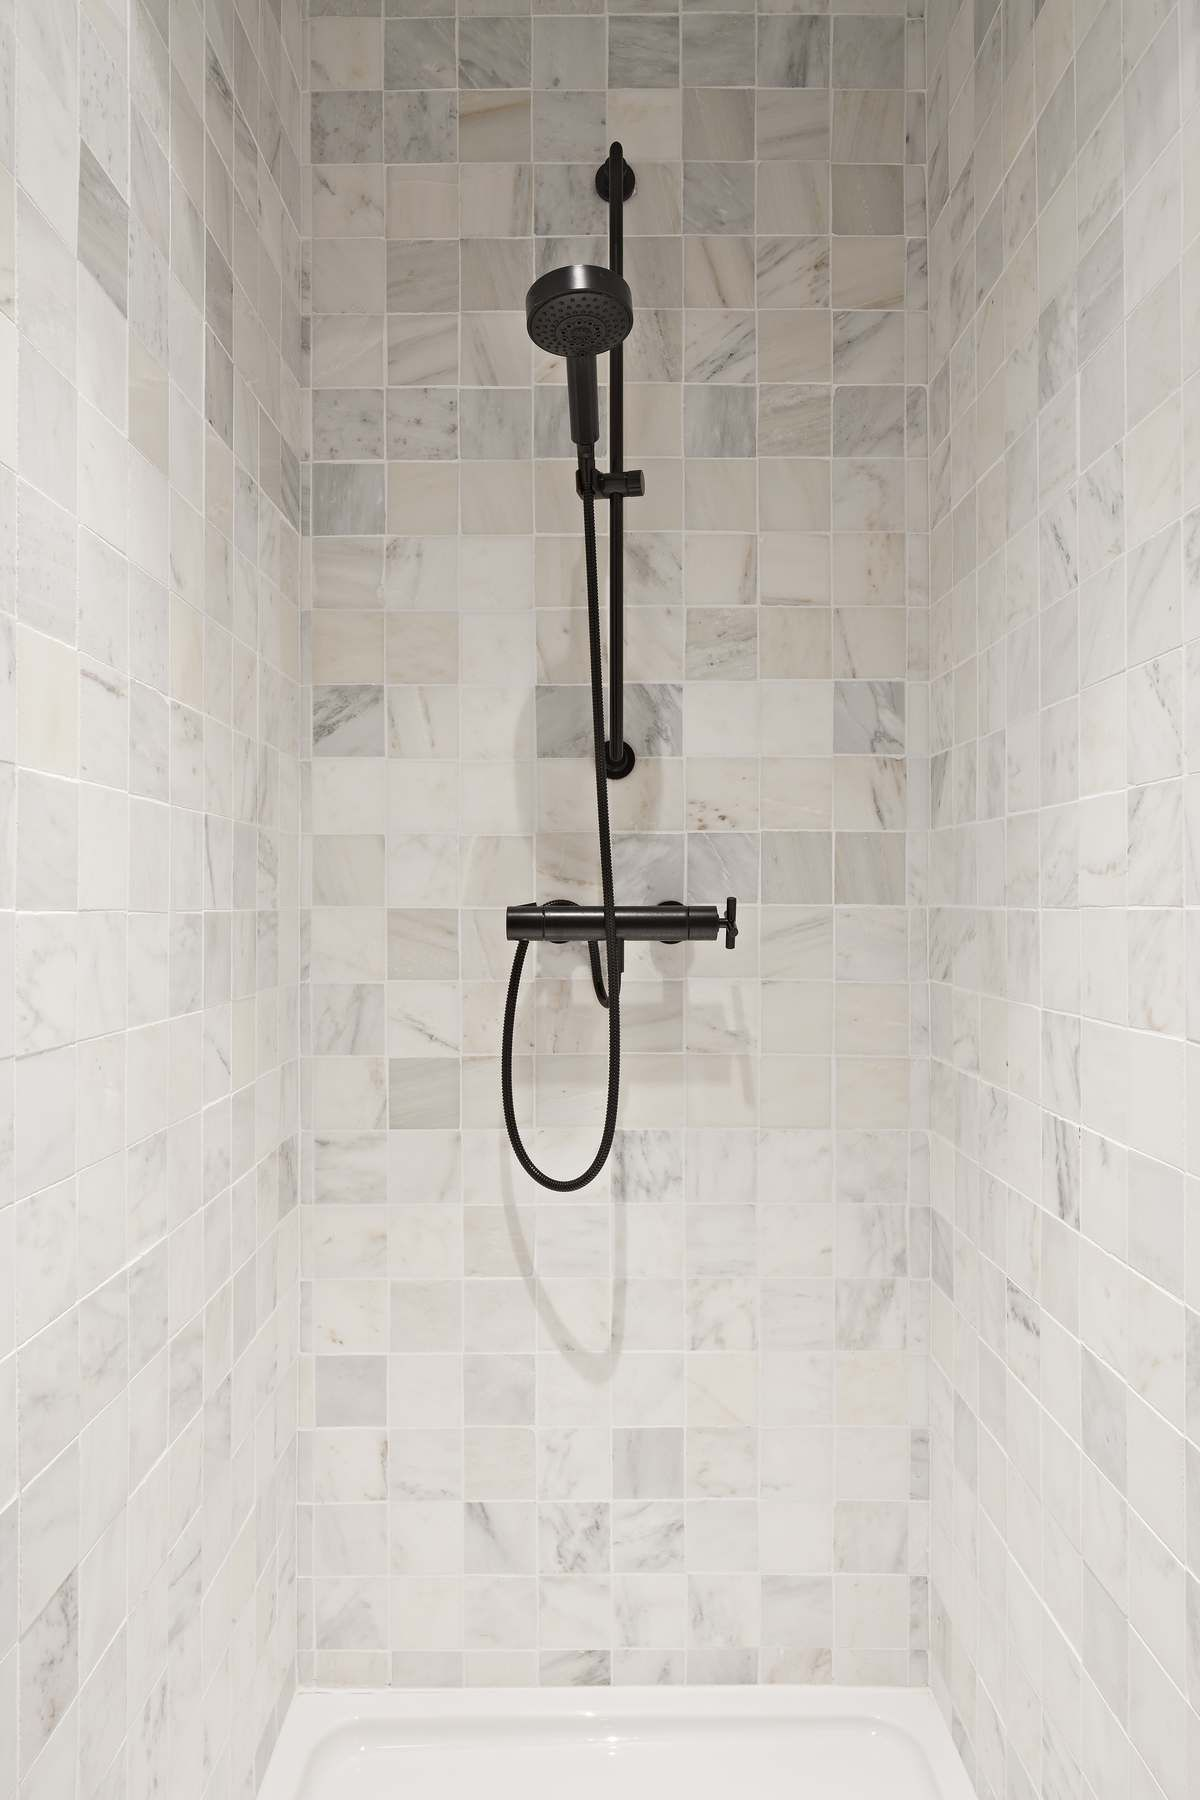 Old White Verzoet En Gehakte Kanten 10 X 10 X 1 Ceramic Tile Bathrooms Amazing Bathrooms Modern Bathroom